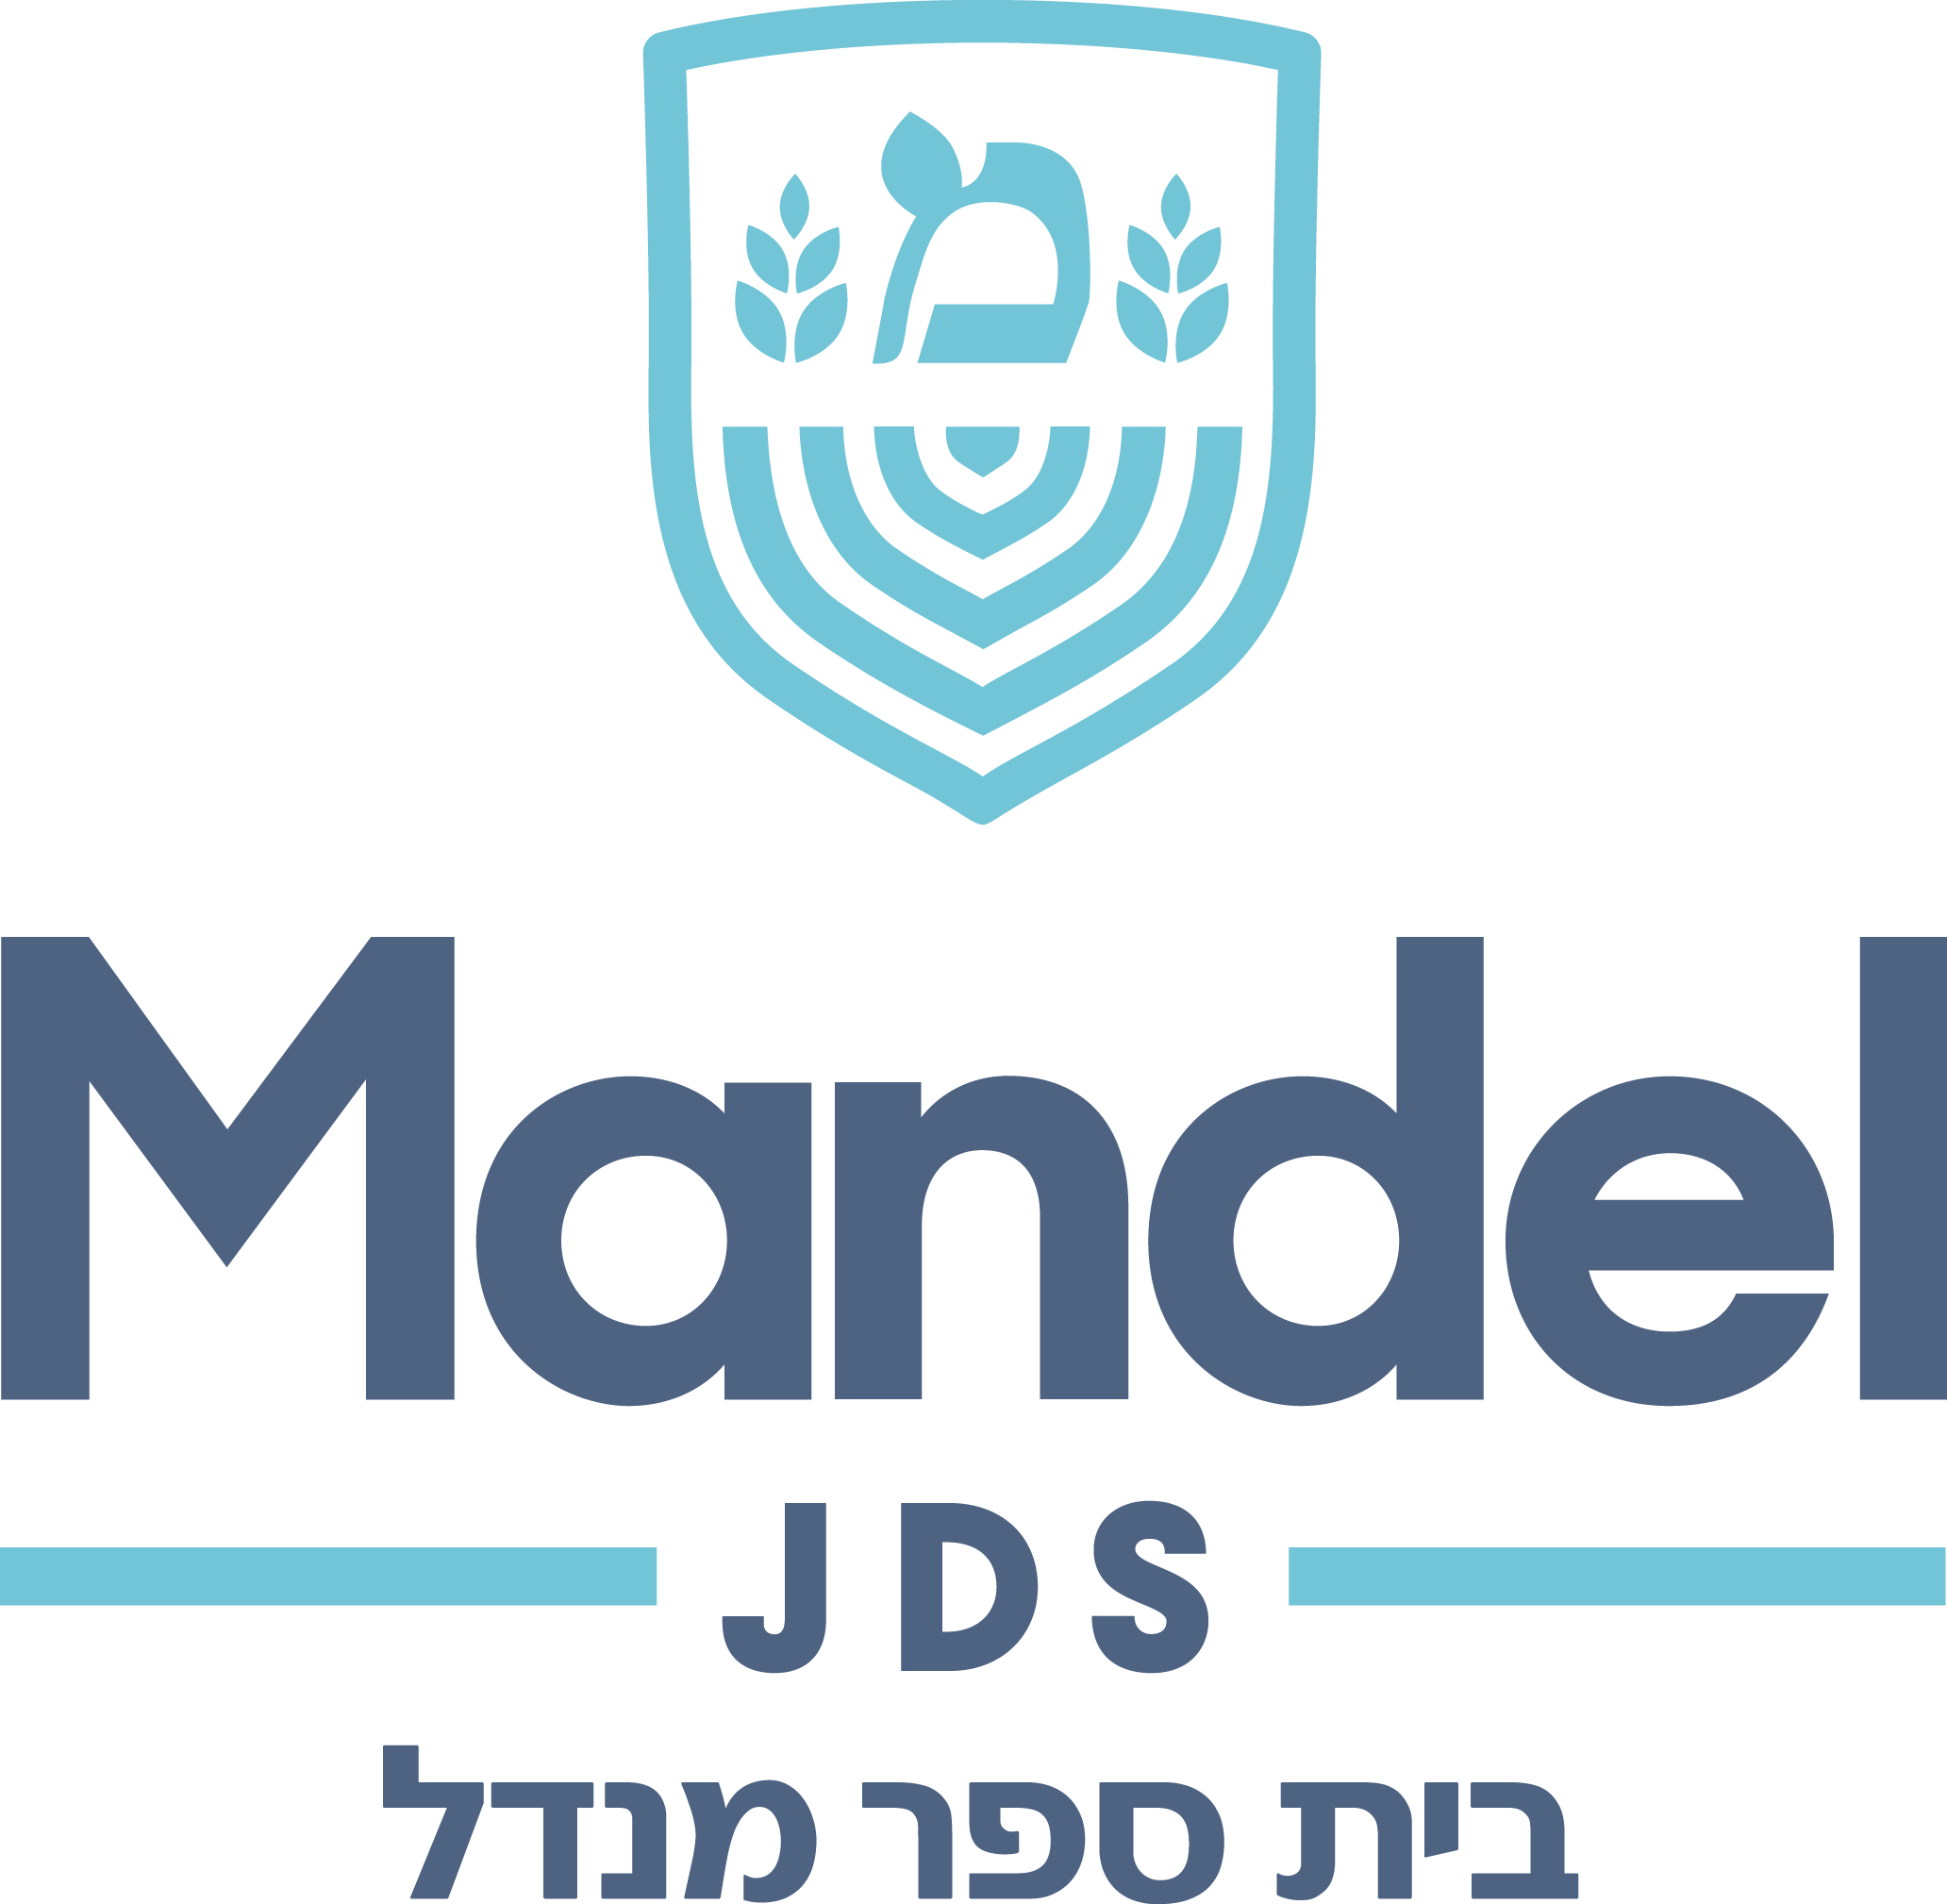 Mandel Jewish Day School New Logo